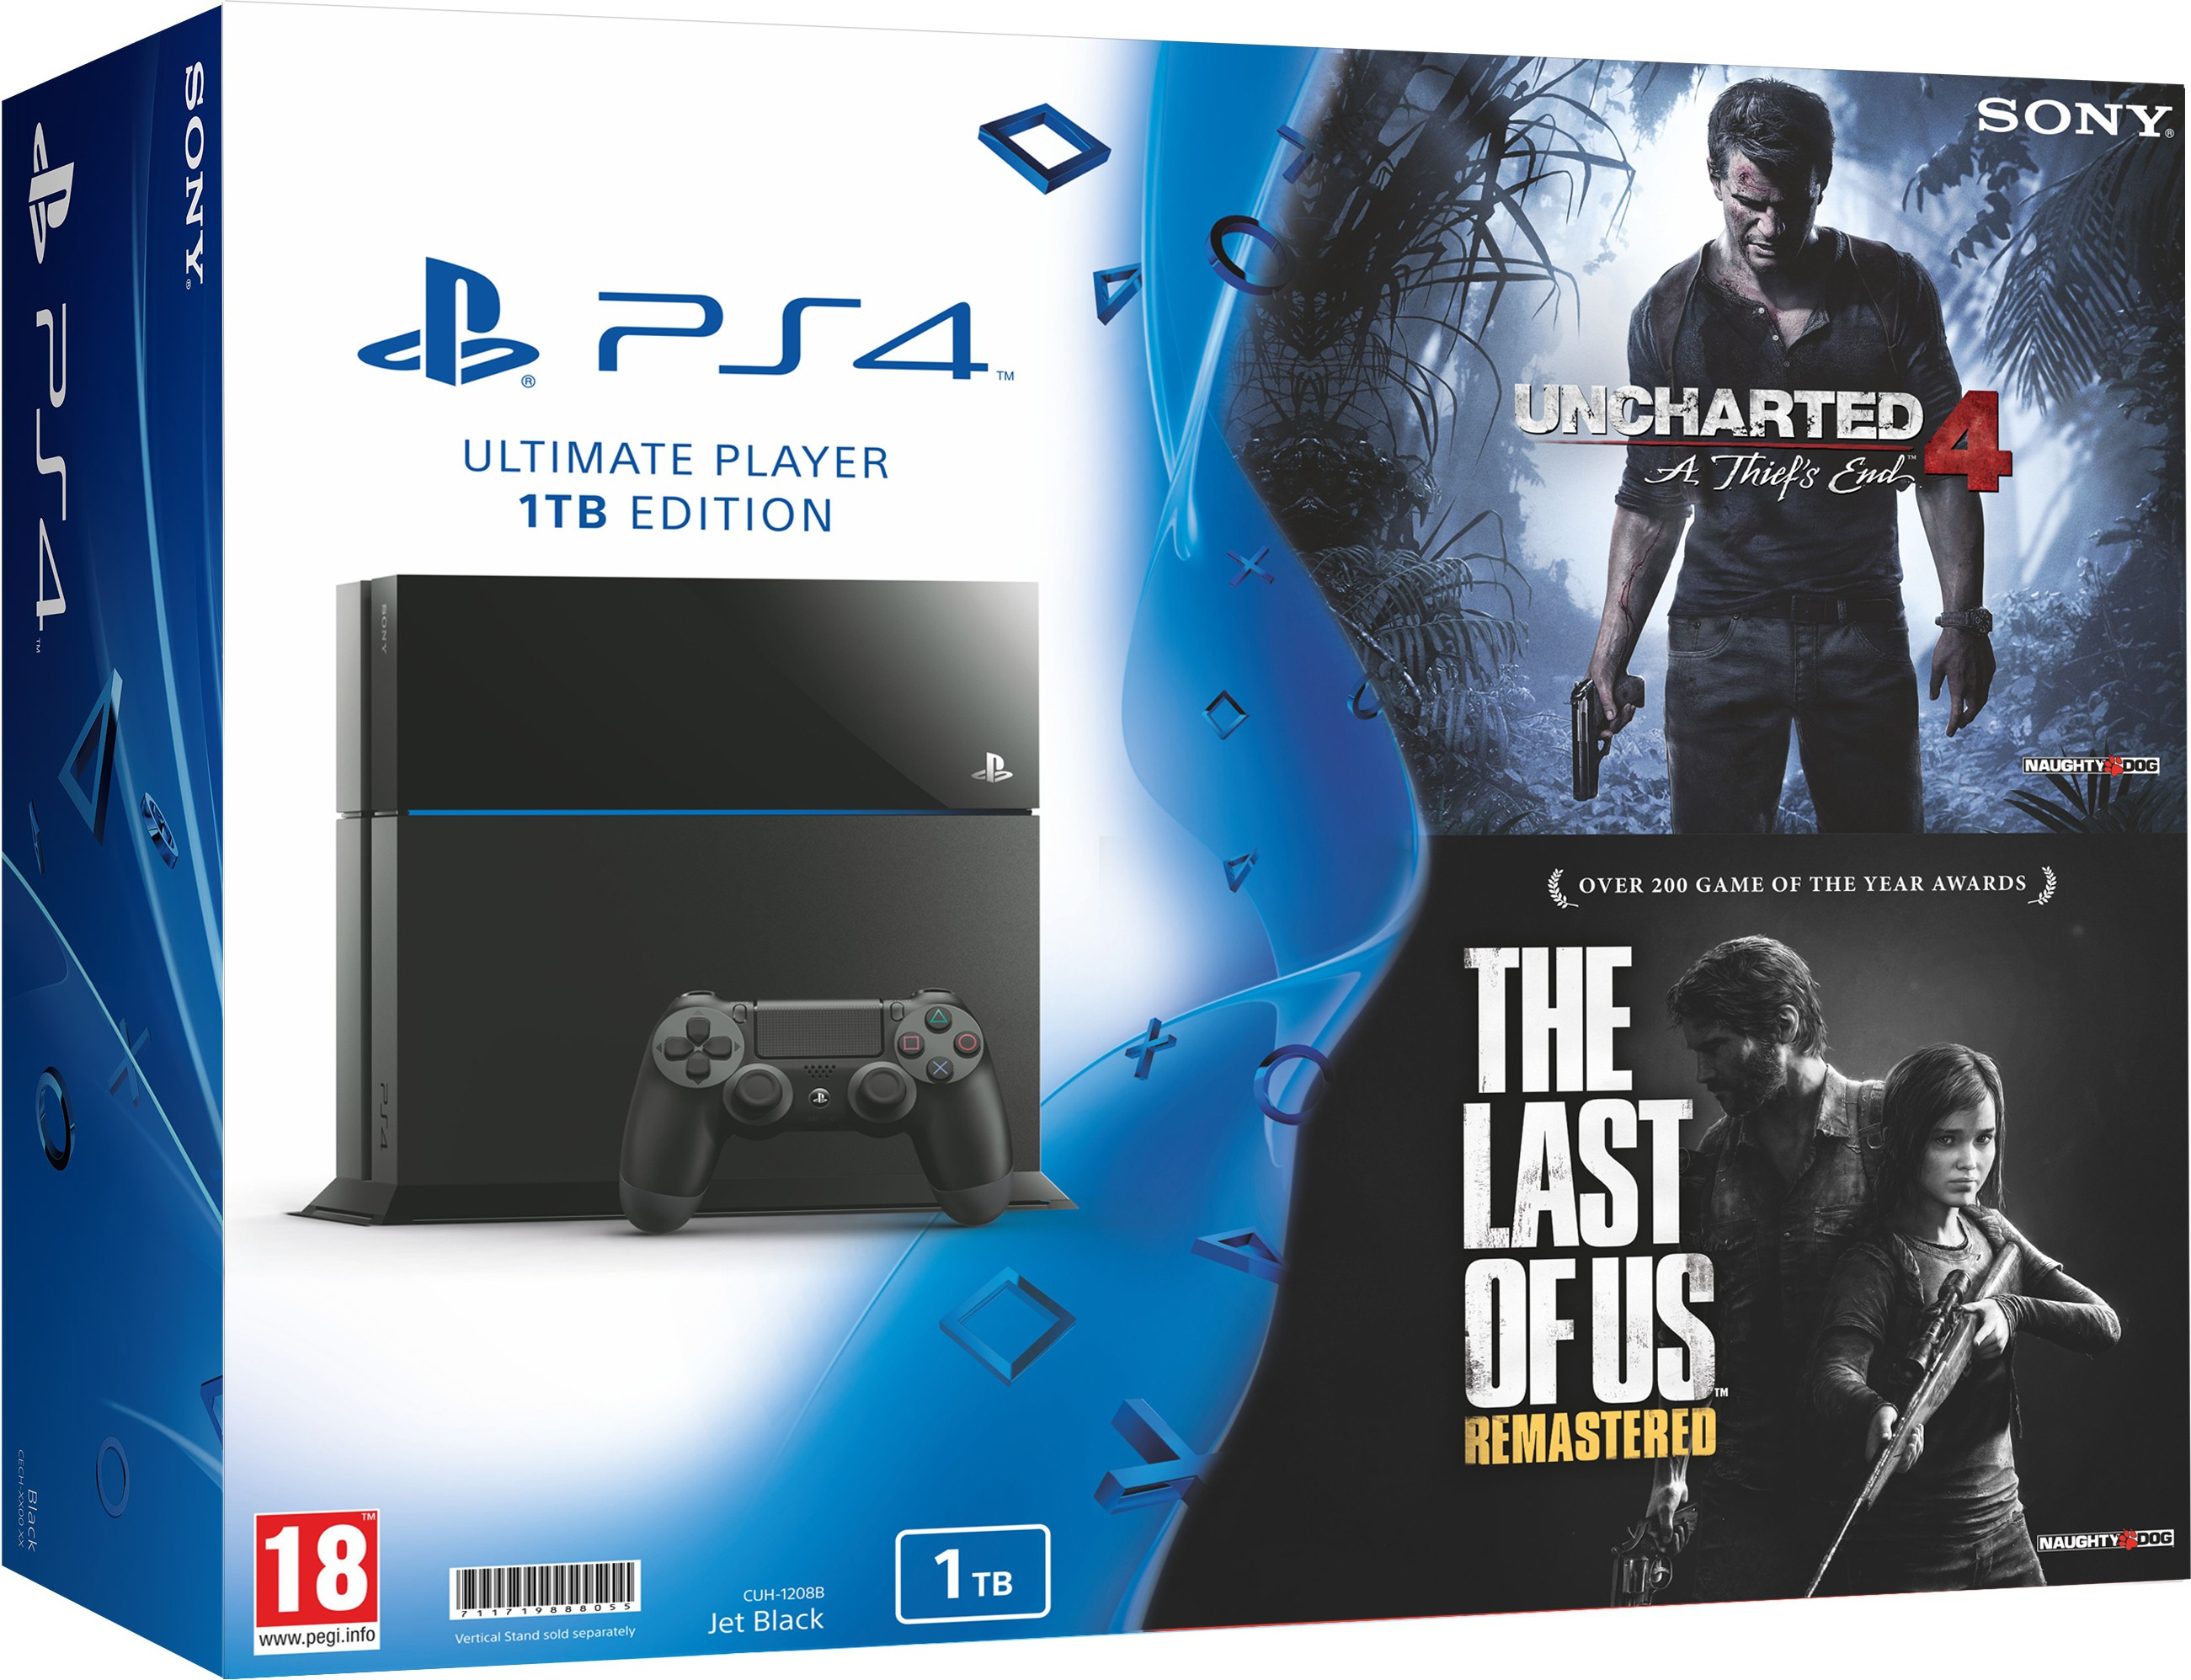 Deals - Bangalore - Sony PlayStation 4 <br> Starting from ₹26,590<br> Category - gaming<br> Business - Flipkart.com